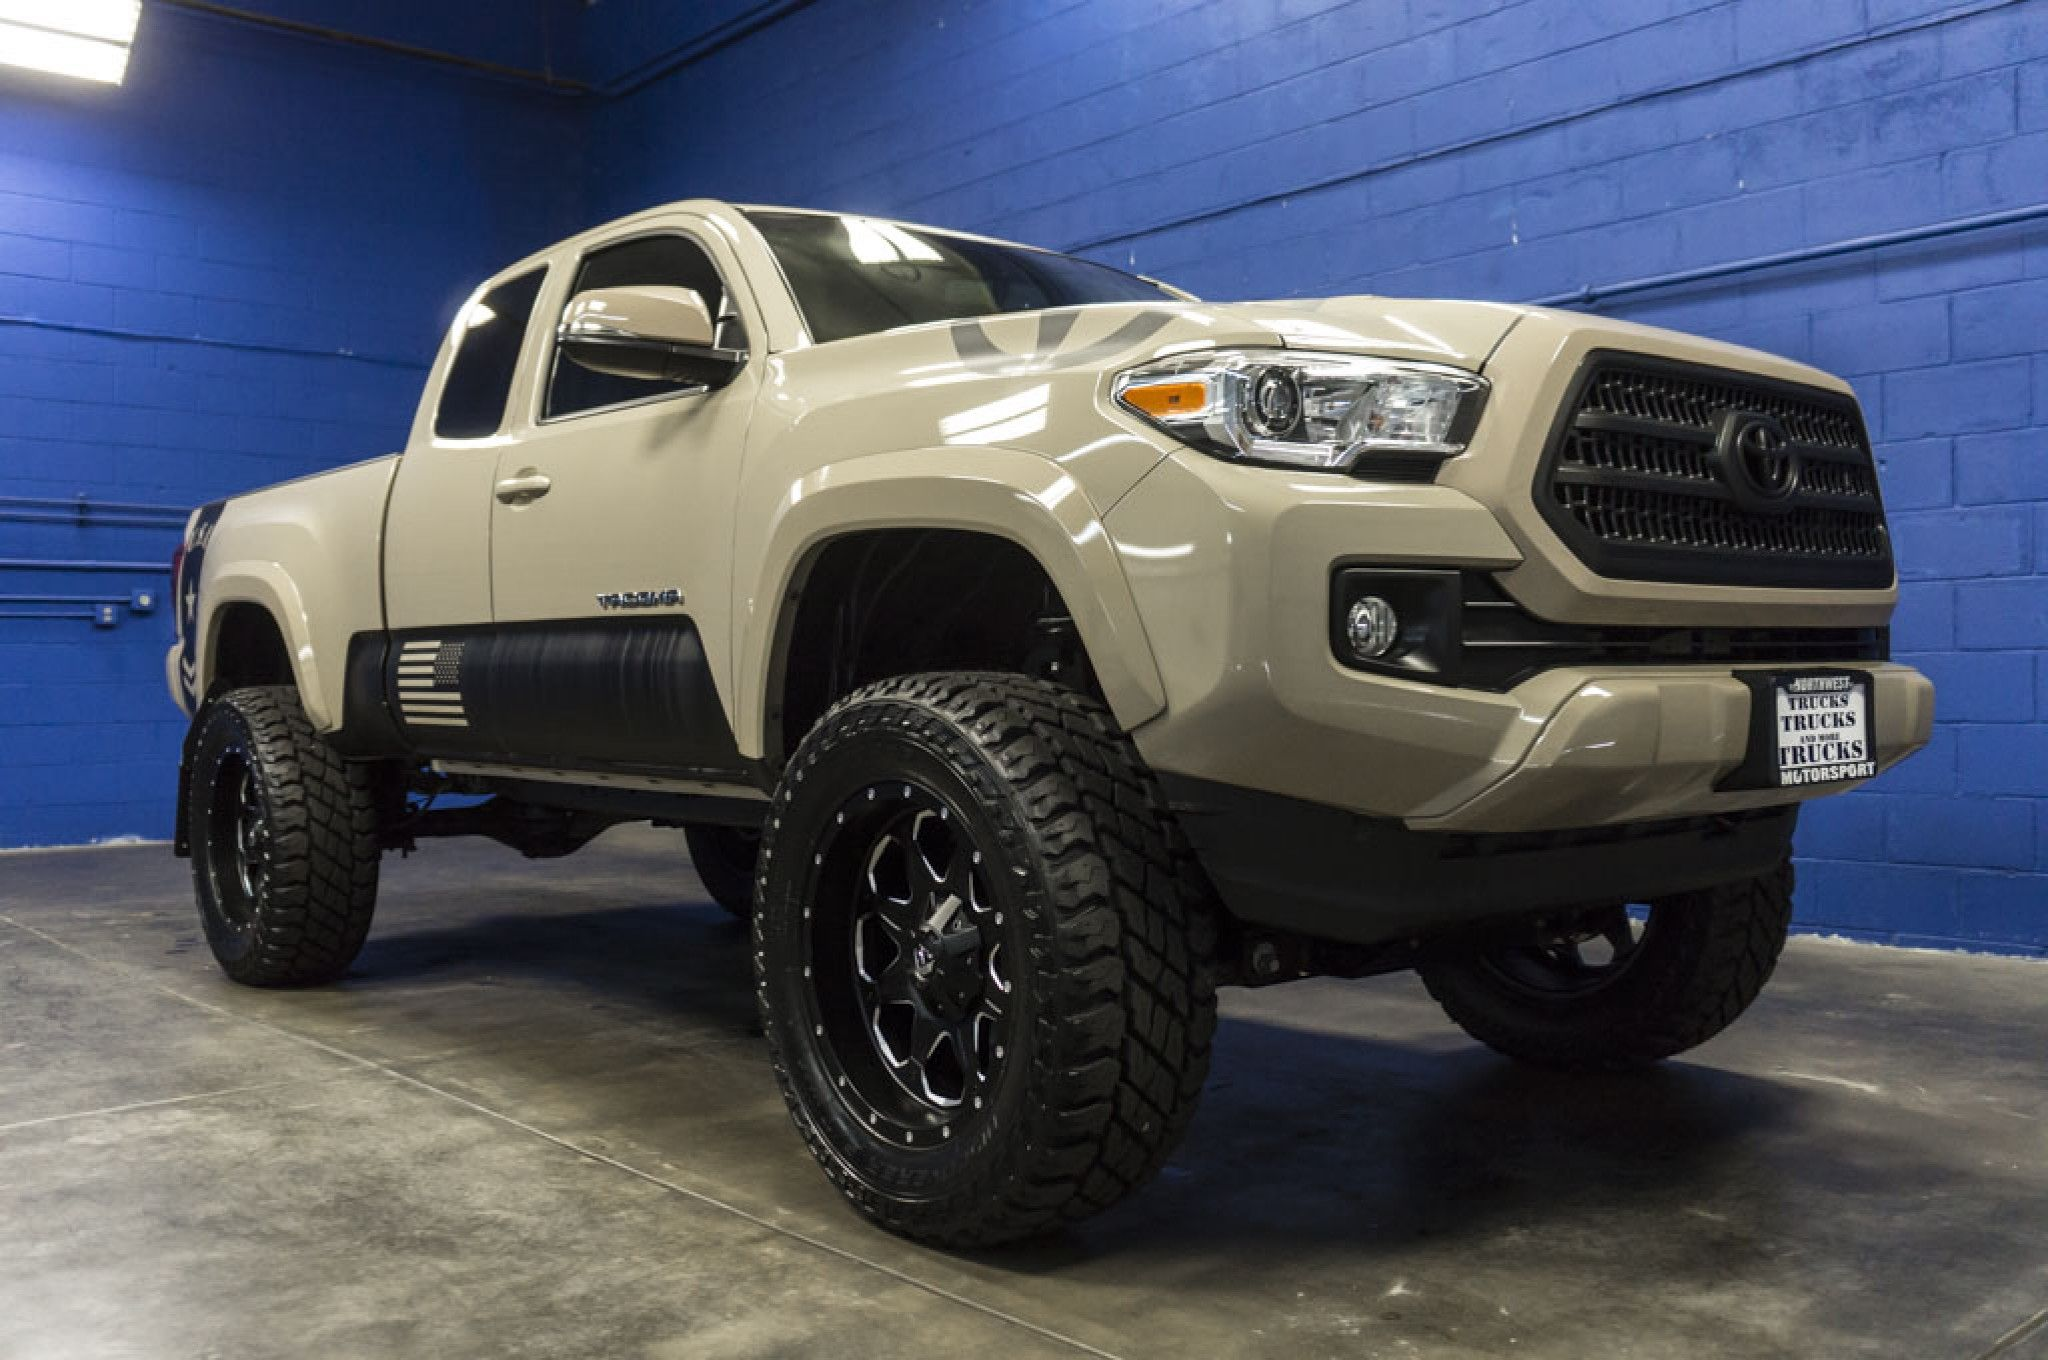 One Owner Clean Carfax 4x4 Custom Truck with a Brand New Lift Kit!